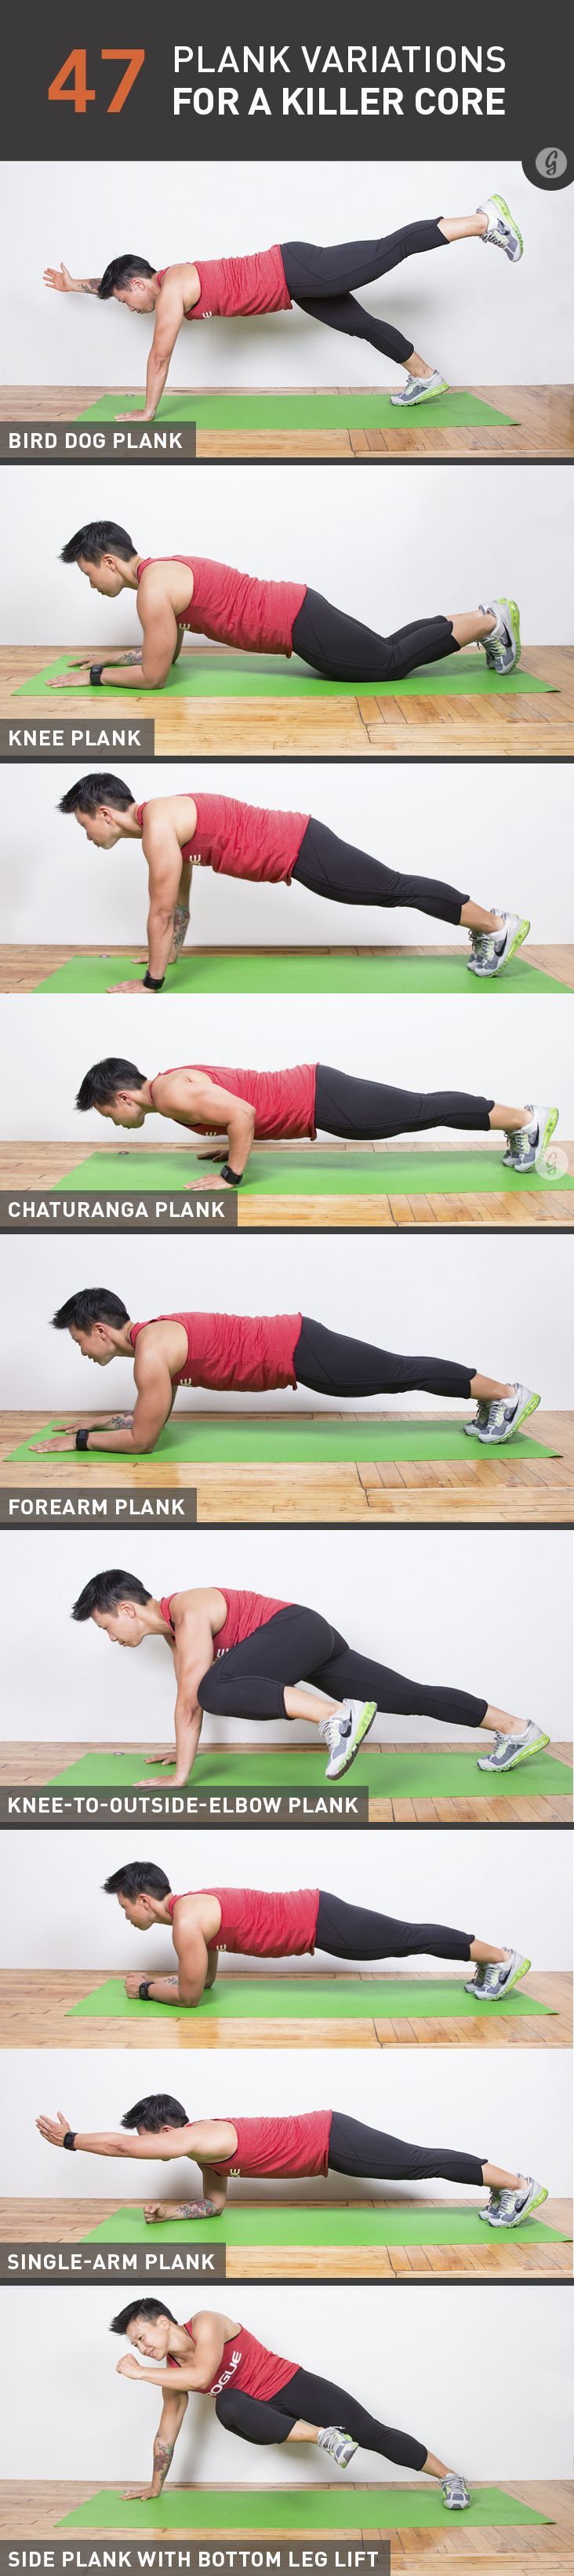 Want tighter, sexier abs? then try these 47 Crazy Fun Plank Variations for a Killer Core! Pin now, check later.